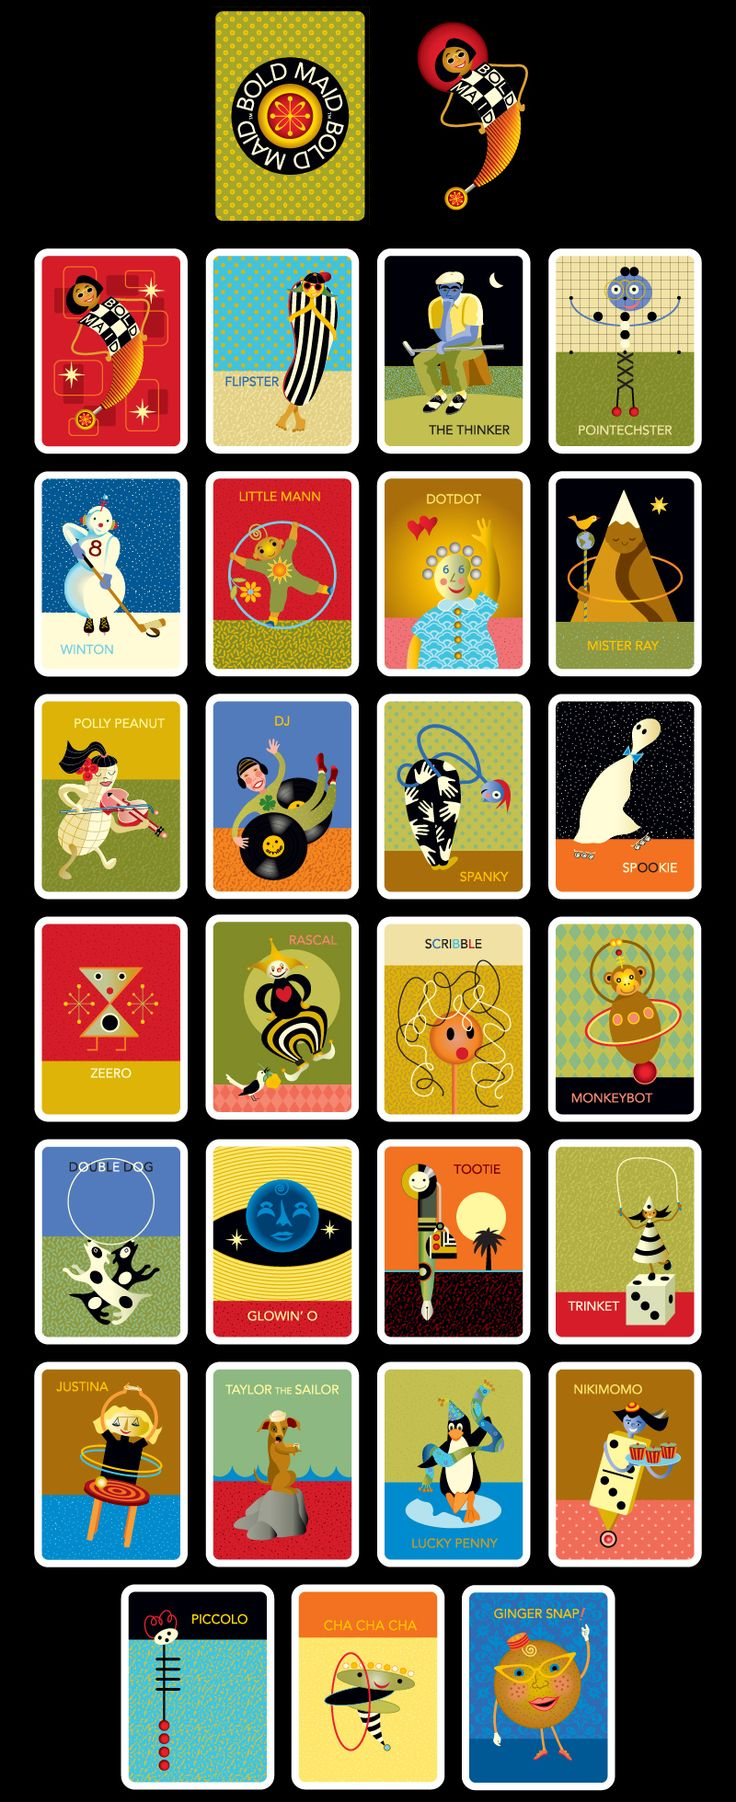 Bold Maid cards as an alternative to the Old Maid card game!